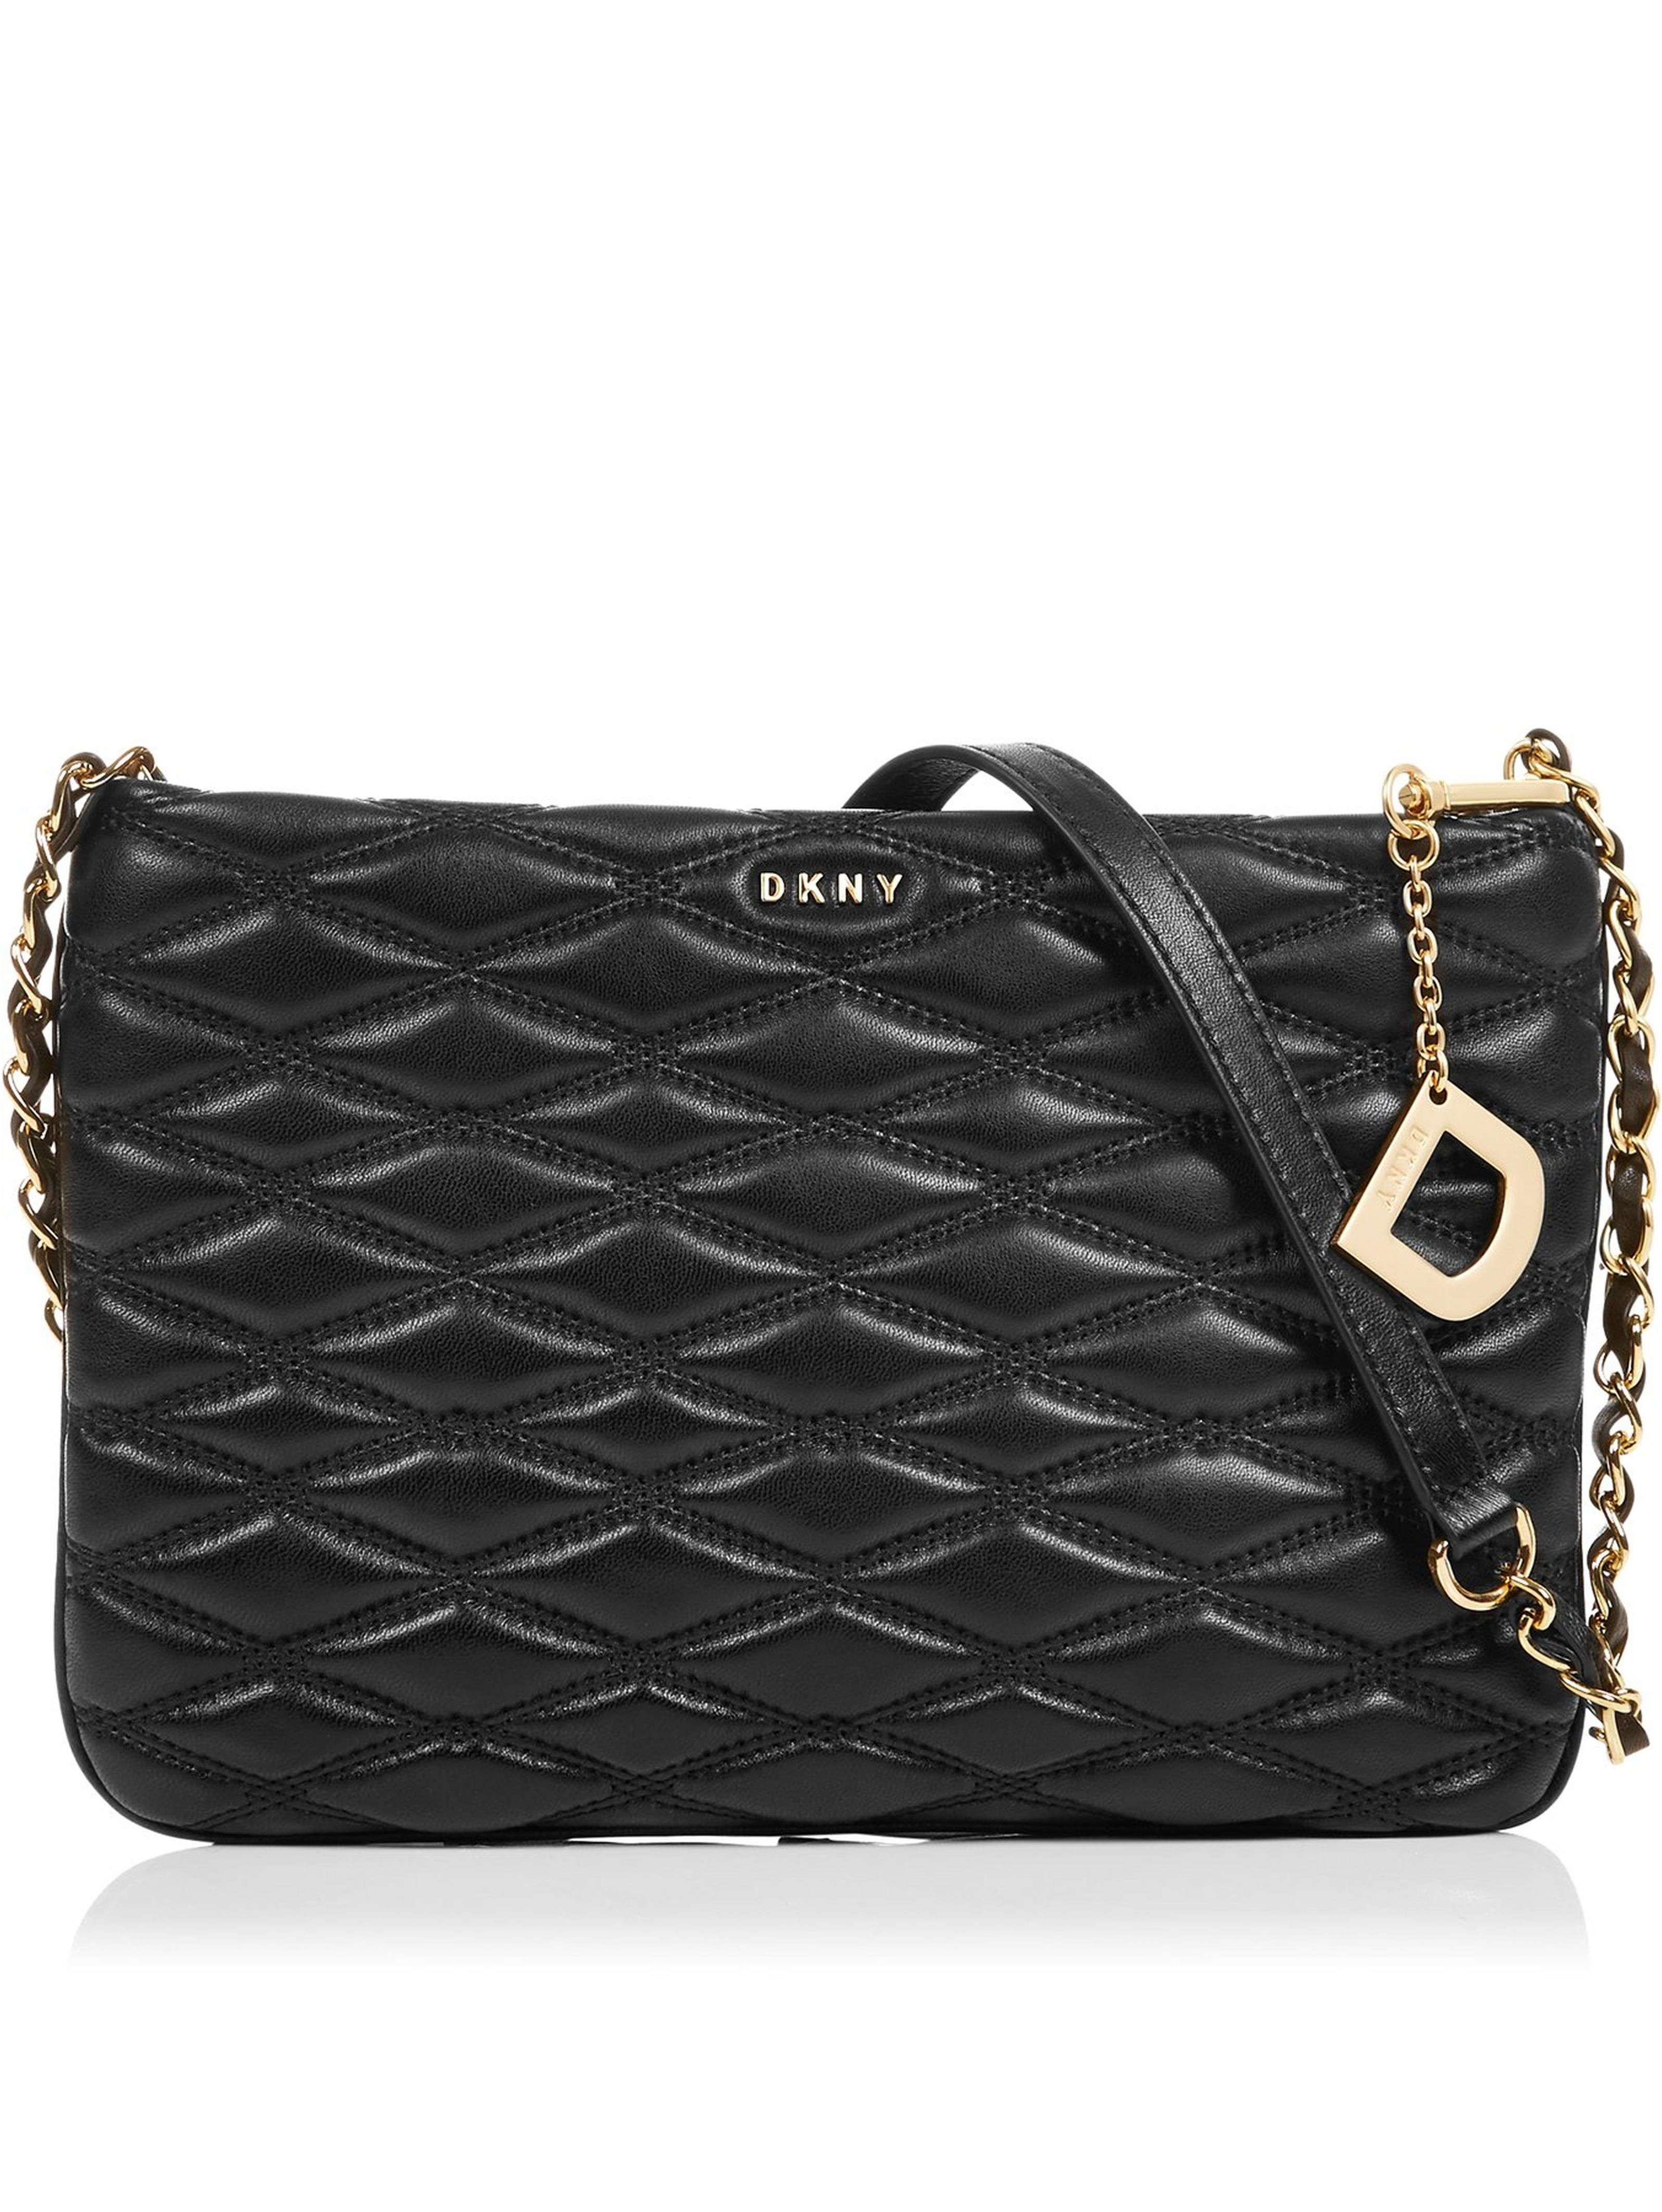 7f944b6746 DKNY Lara Top Zip Diamond Quilted Cross-Body Bag- BlackSize    FitDimensions  Height  18cm x Width  27cm x Depth  3.5cmStrap drop  53cm  DetailsLara Top Zip ...